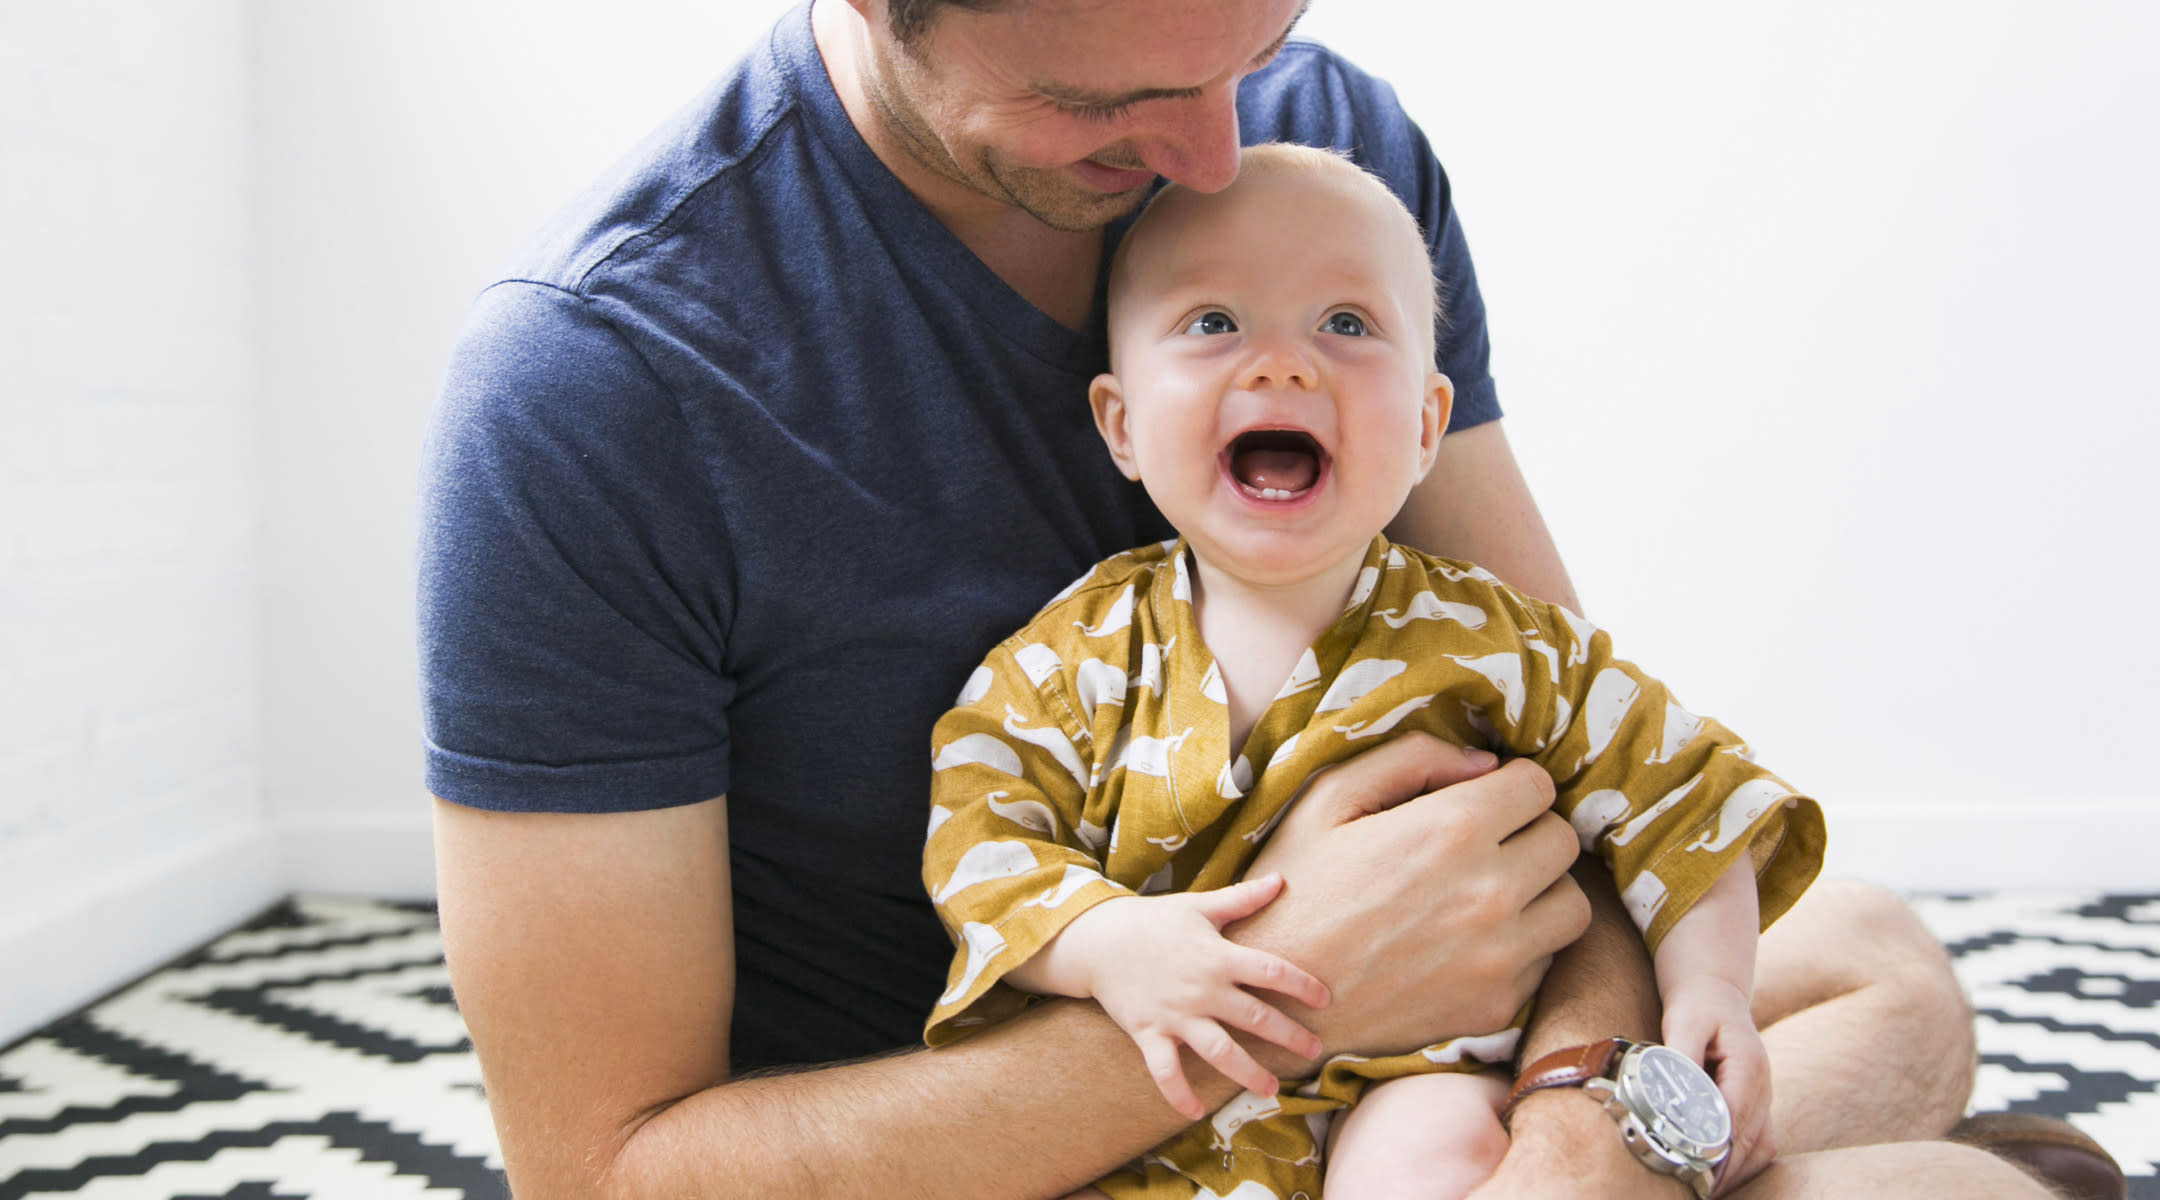 Dad holding excited baby.